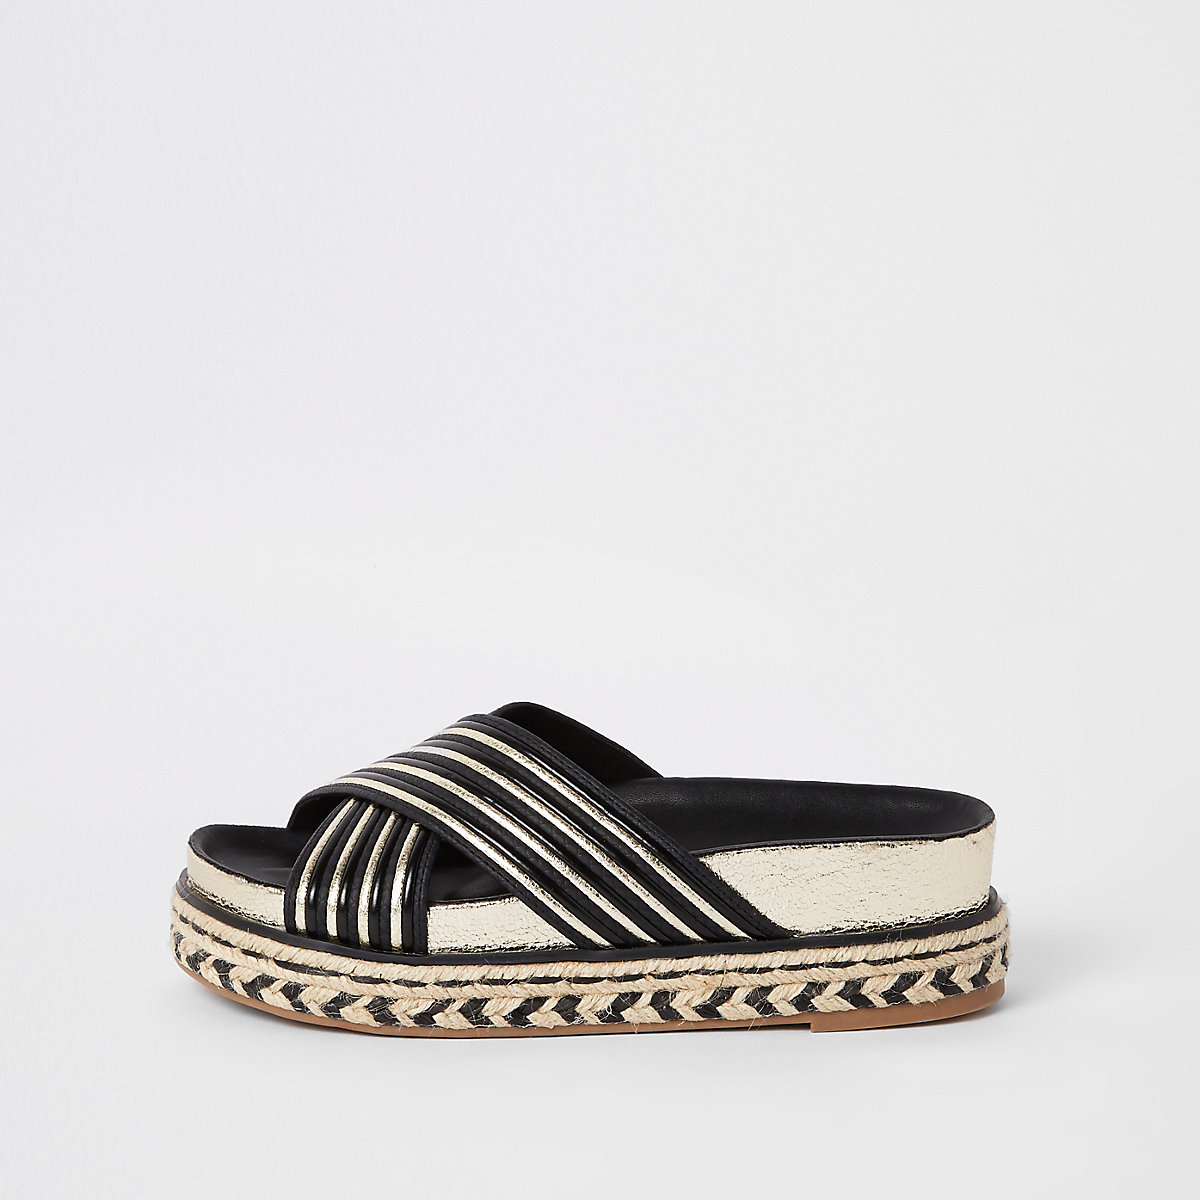 Black cross strap mule sandals